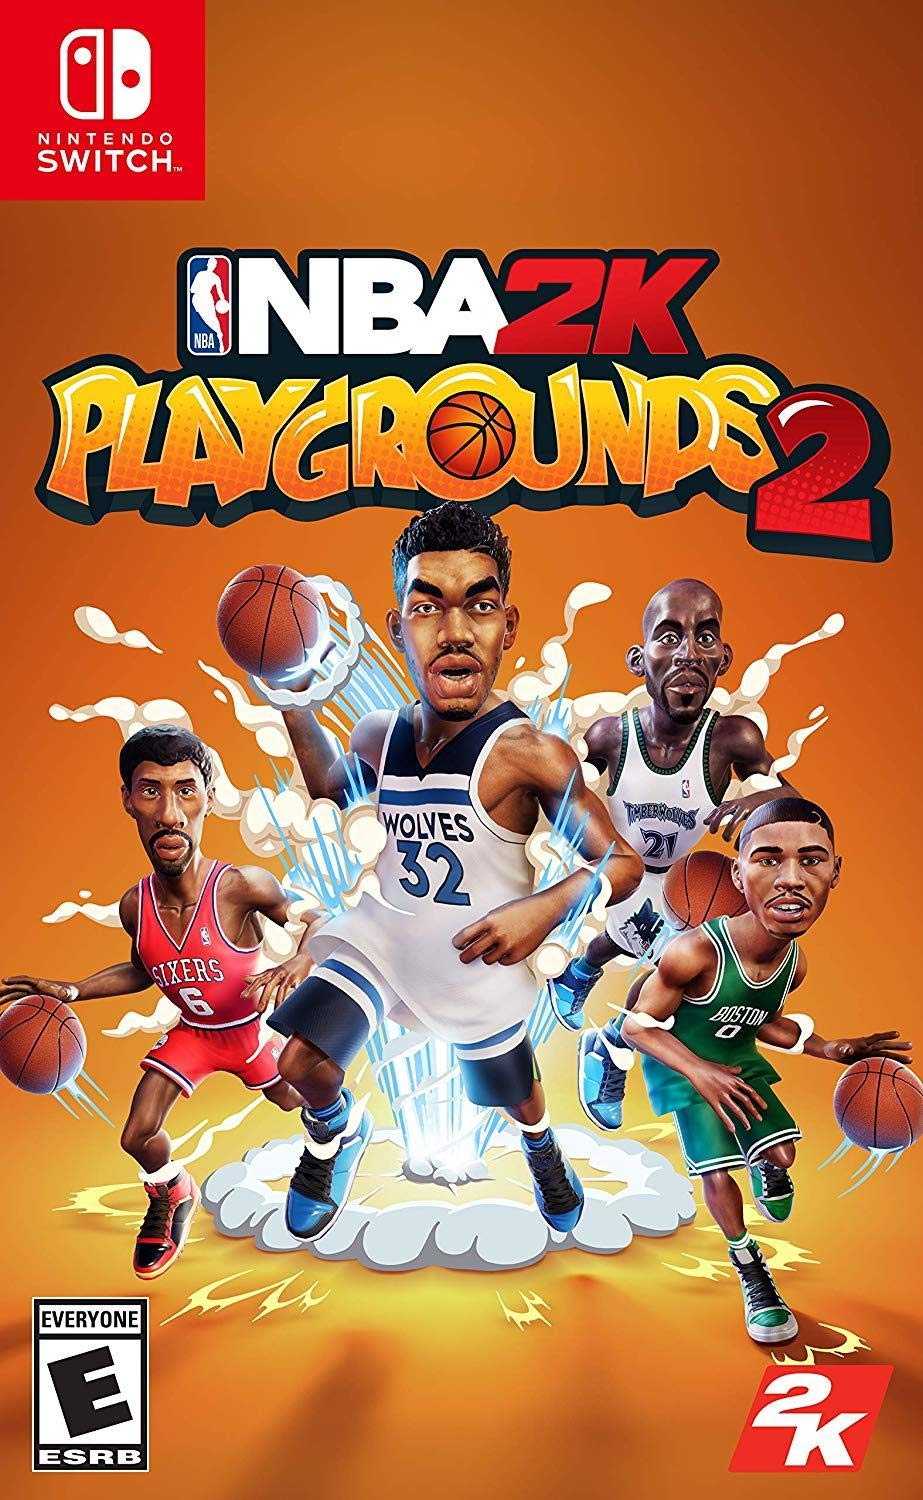 NBA 2K Playgrounds 2 for Nintendo Switch [USA]: Amazon.es: Take 2 ...